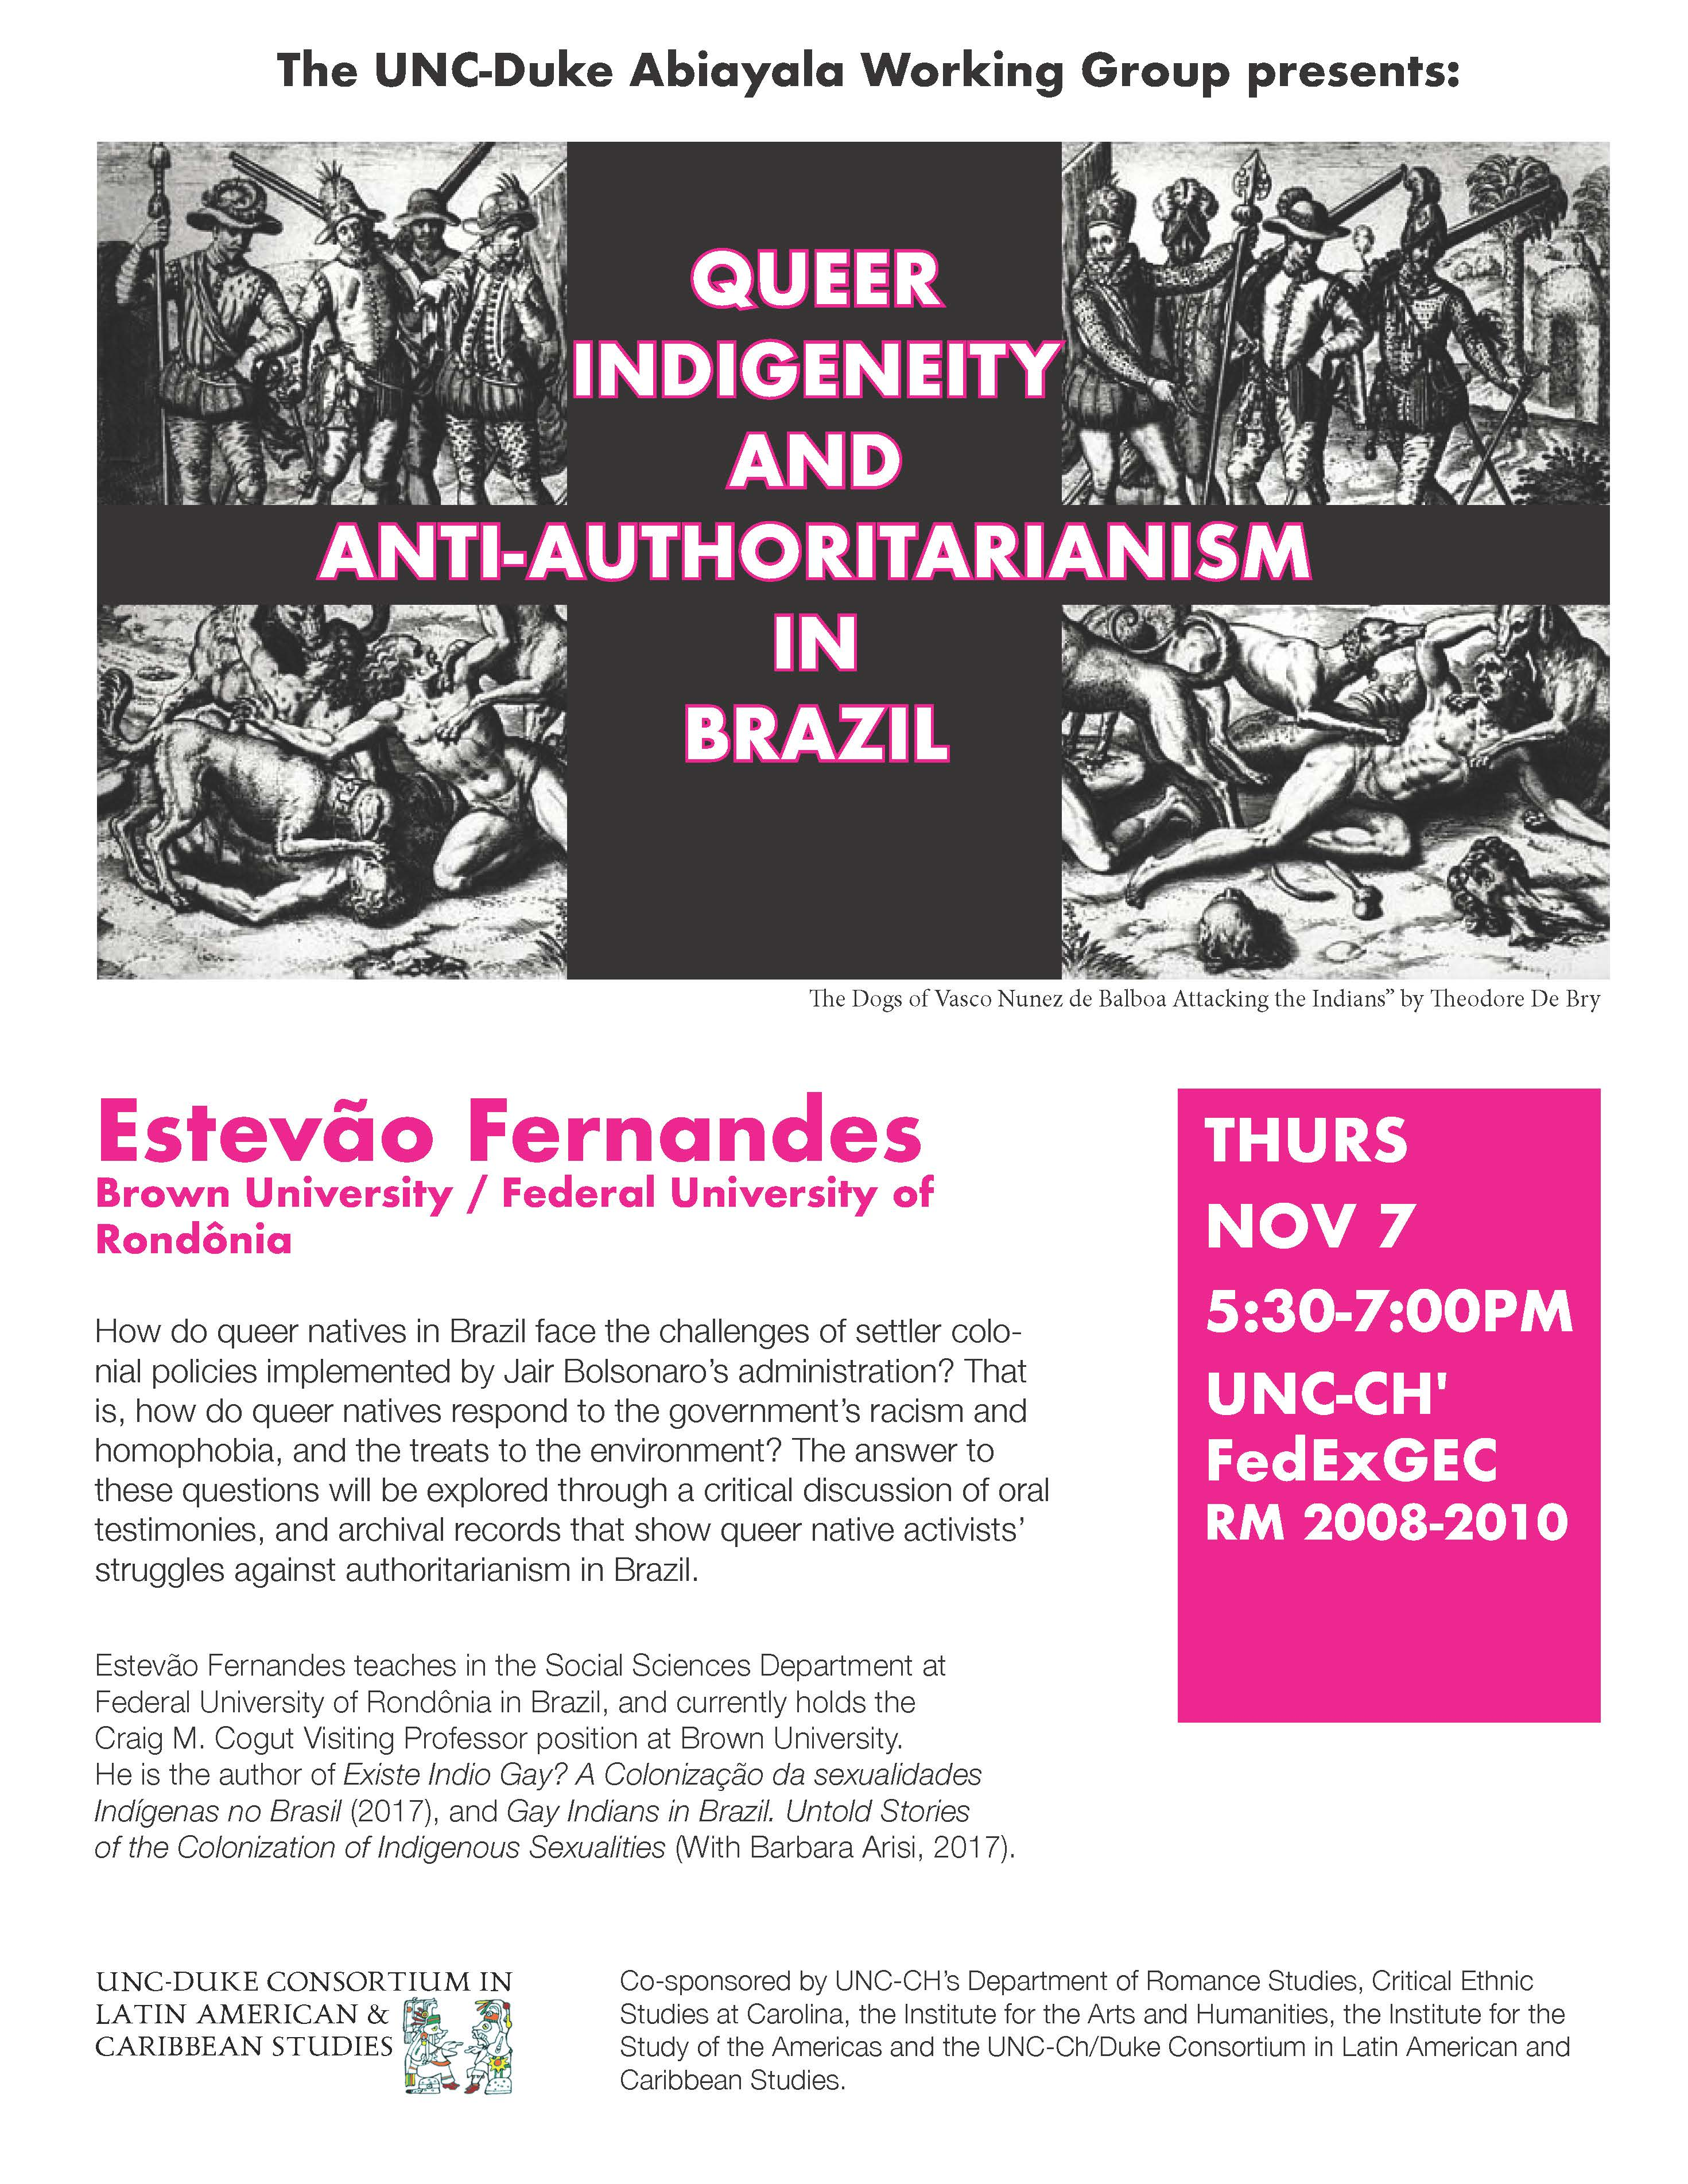 Queer Indigeneity and Anti-Authoritarianism in Brazil